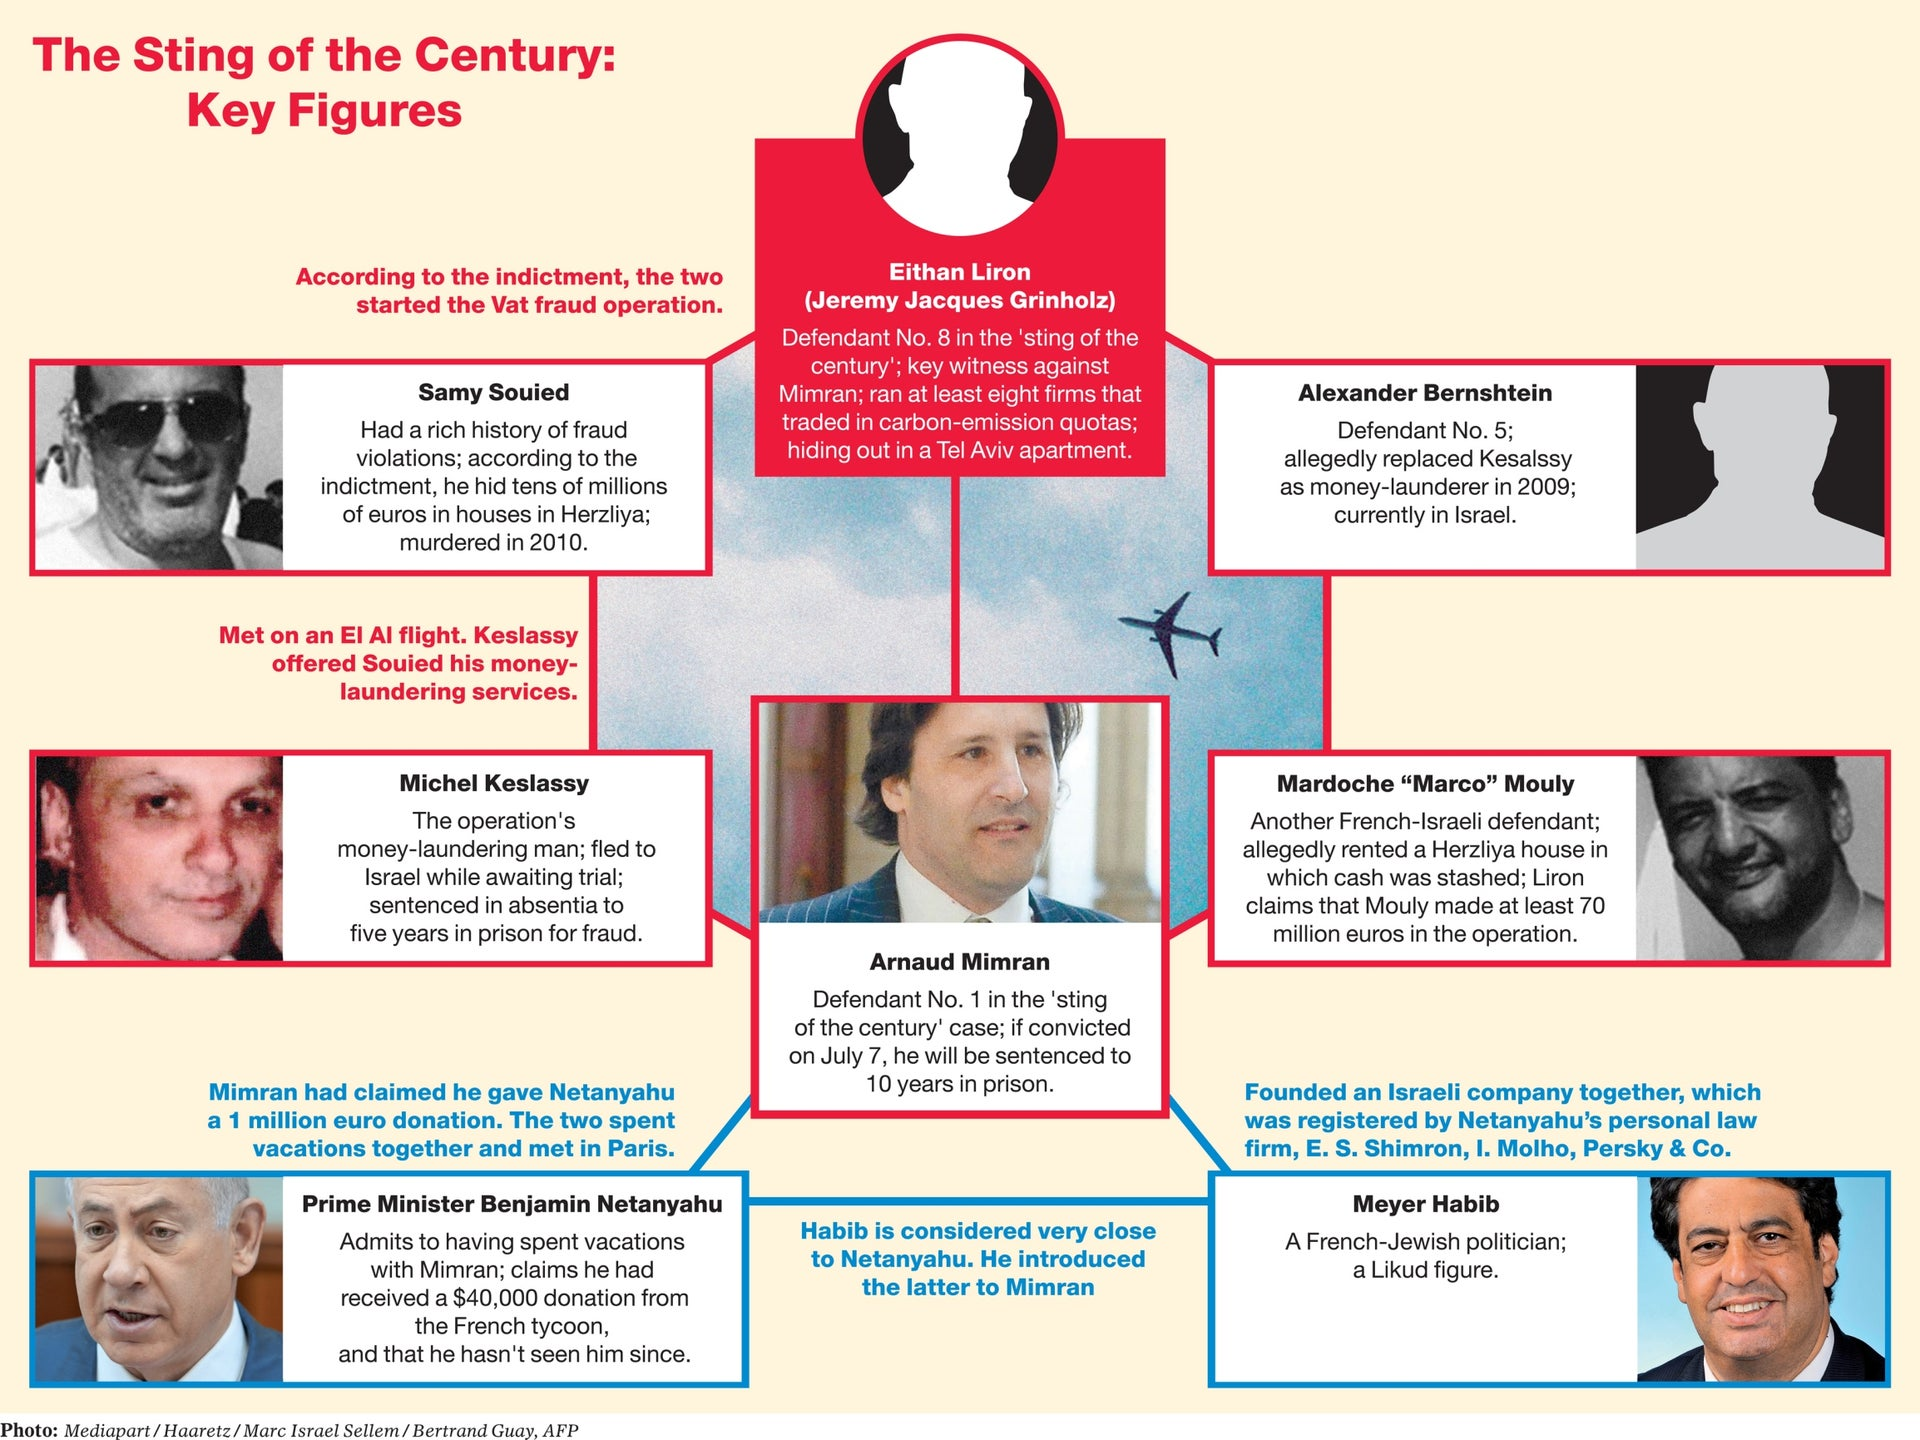 The key figures in the 'sting of the century' case.